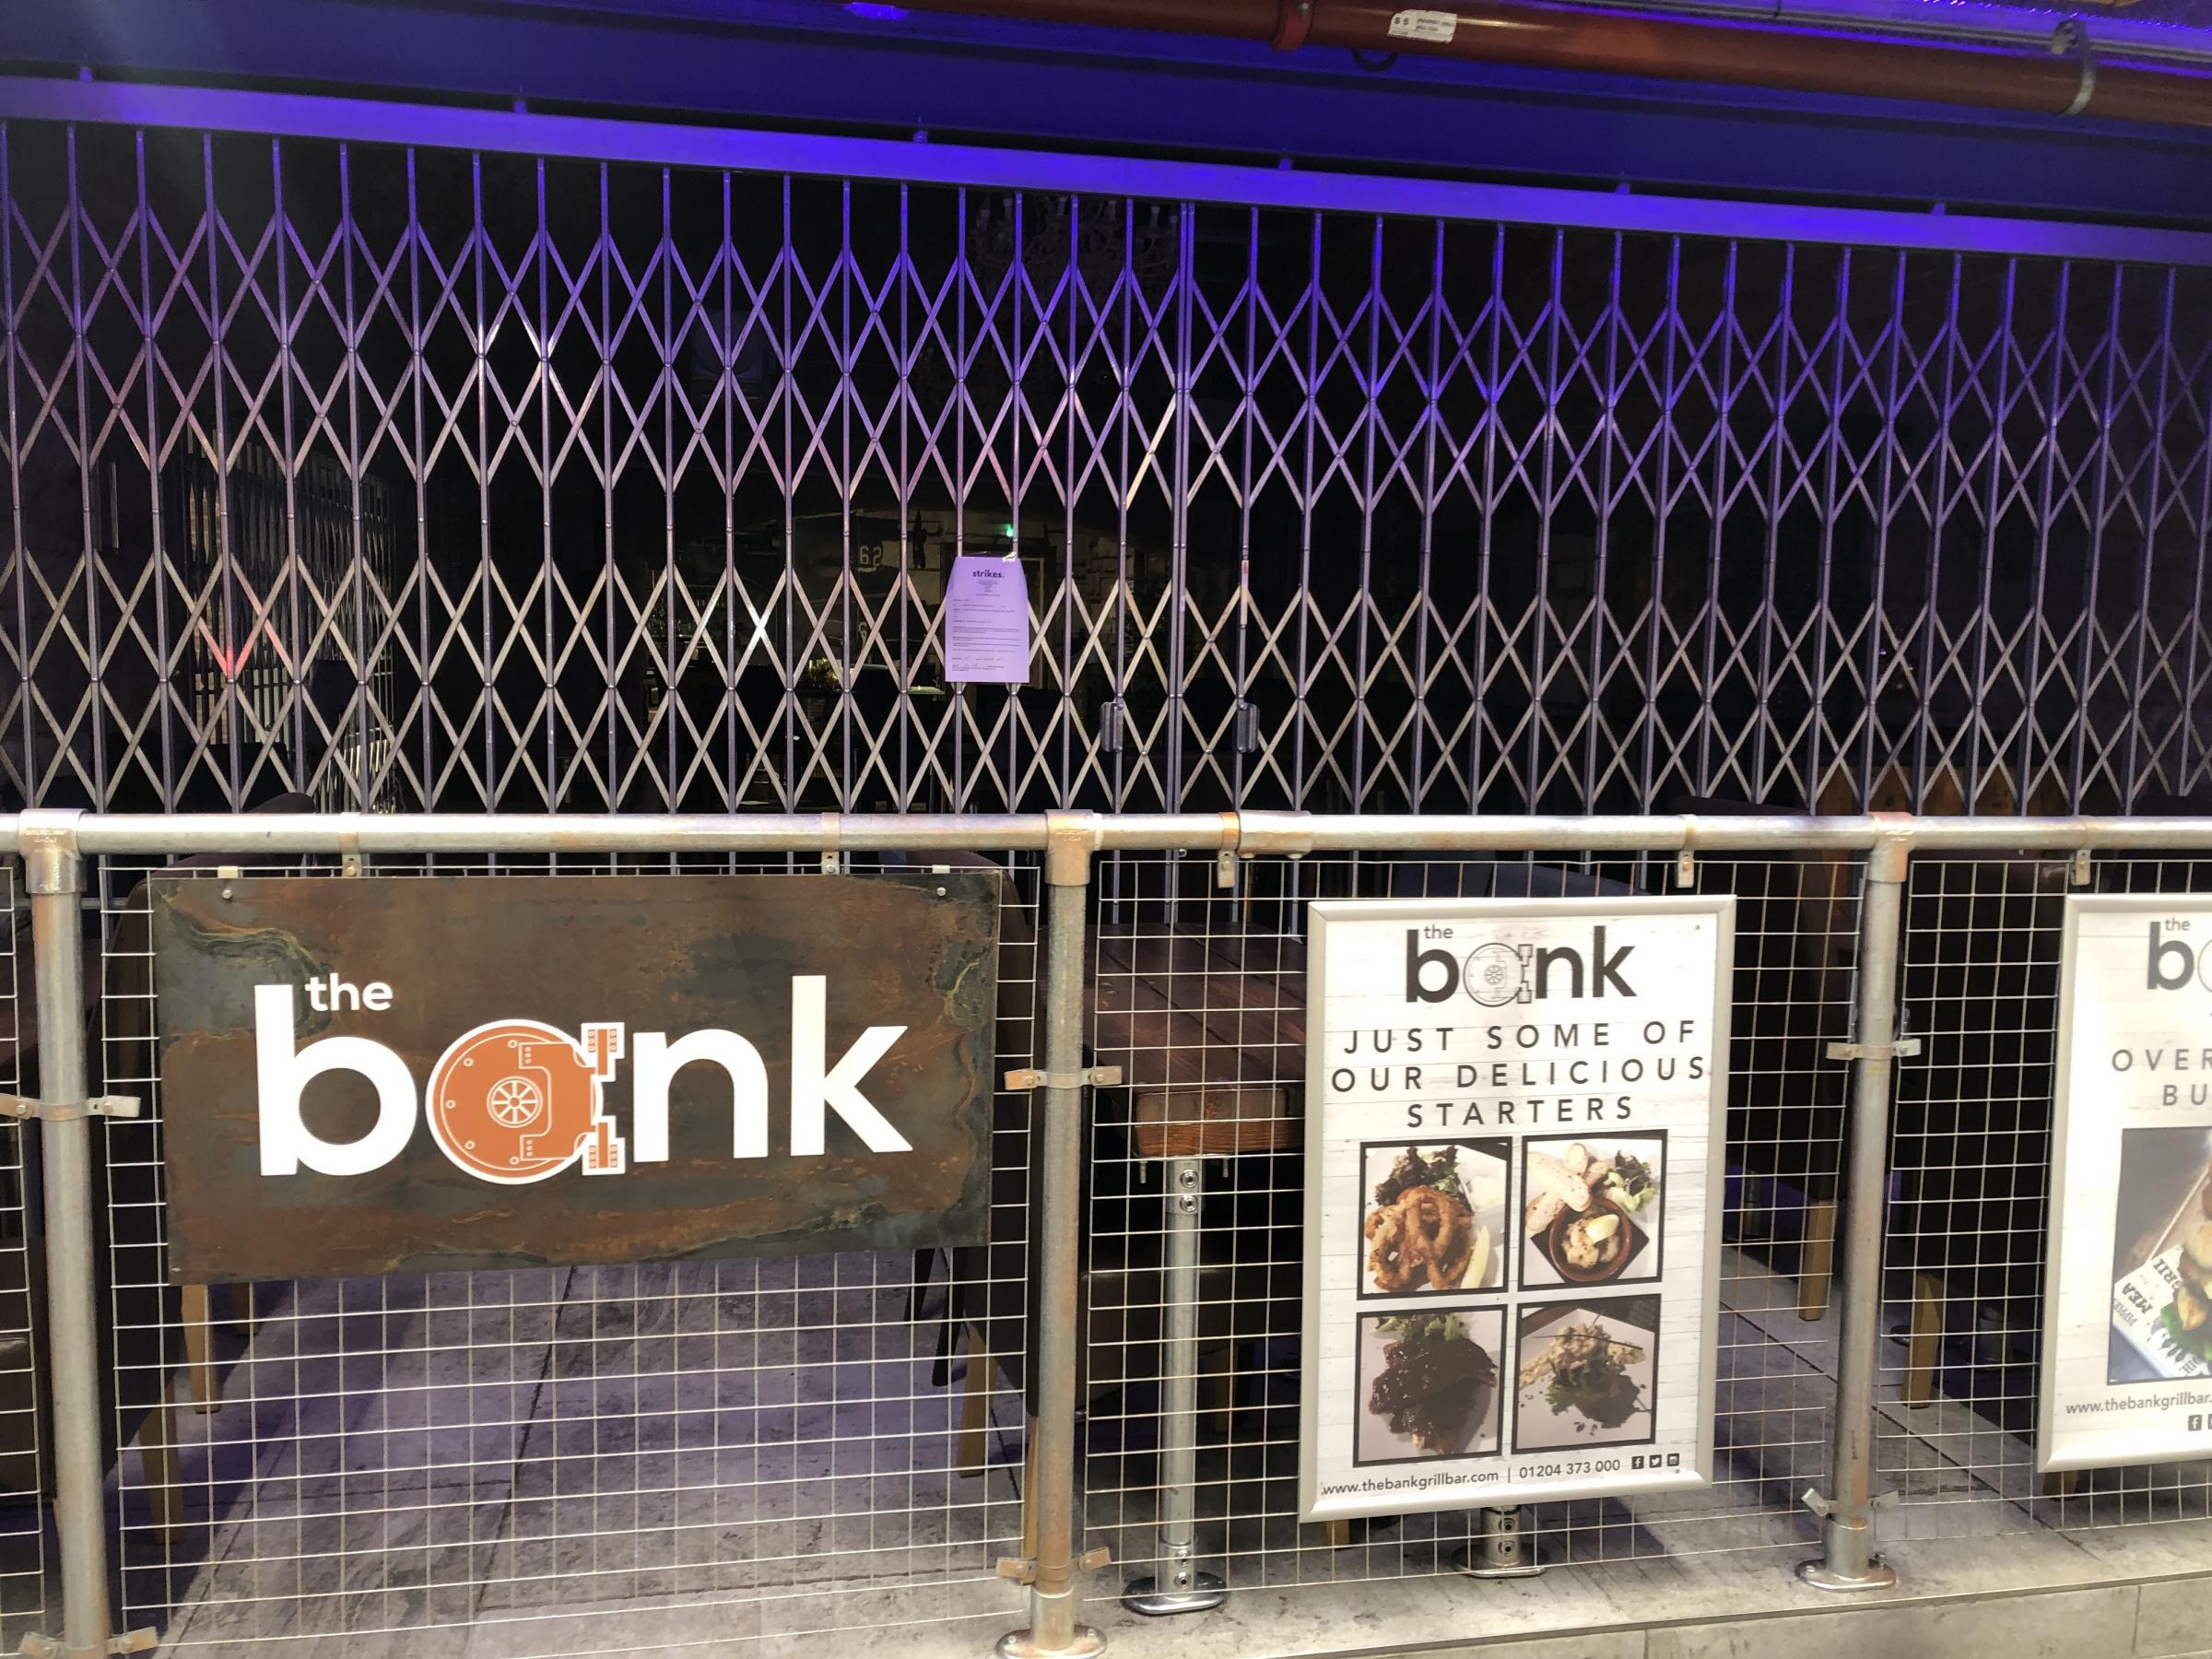 CLOSED: The Bank Restaurant, the Vaults